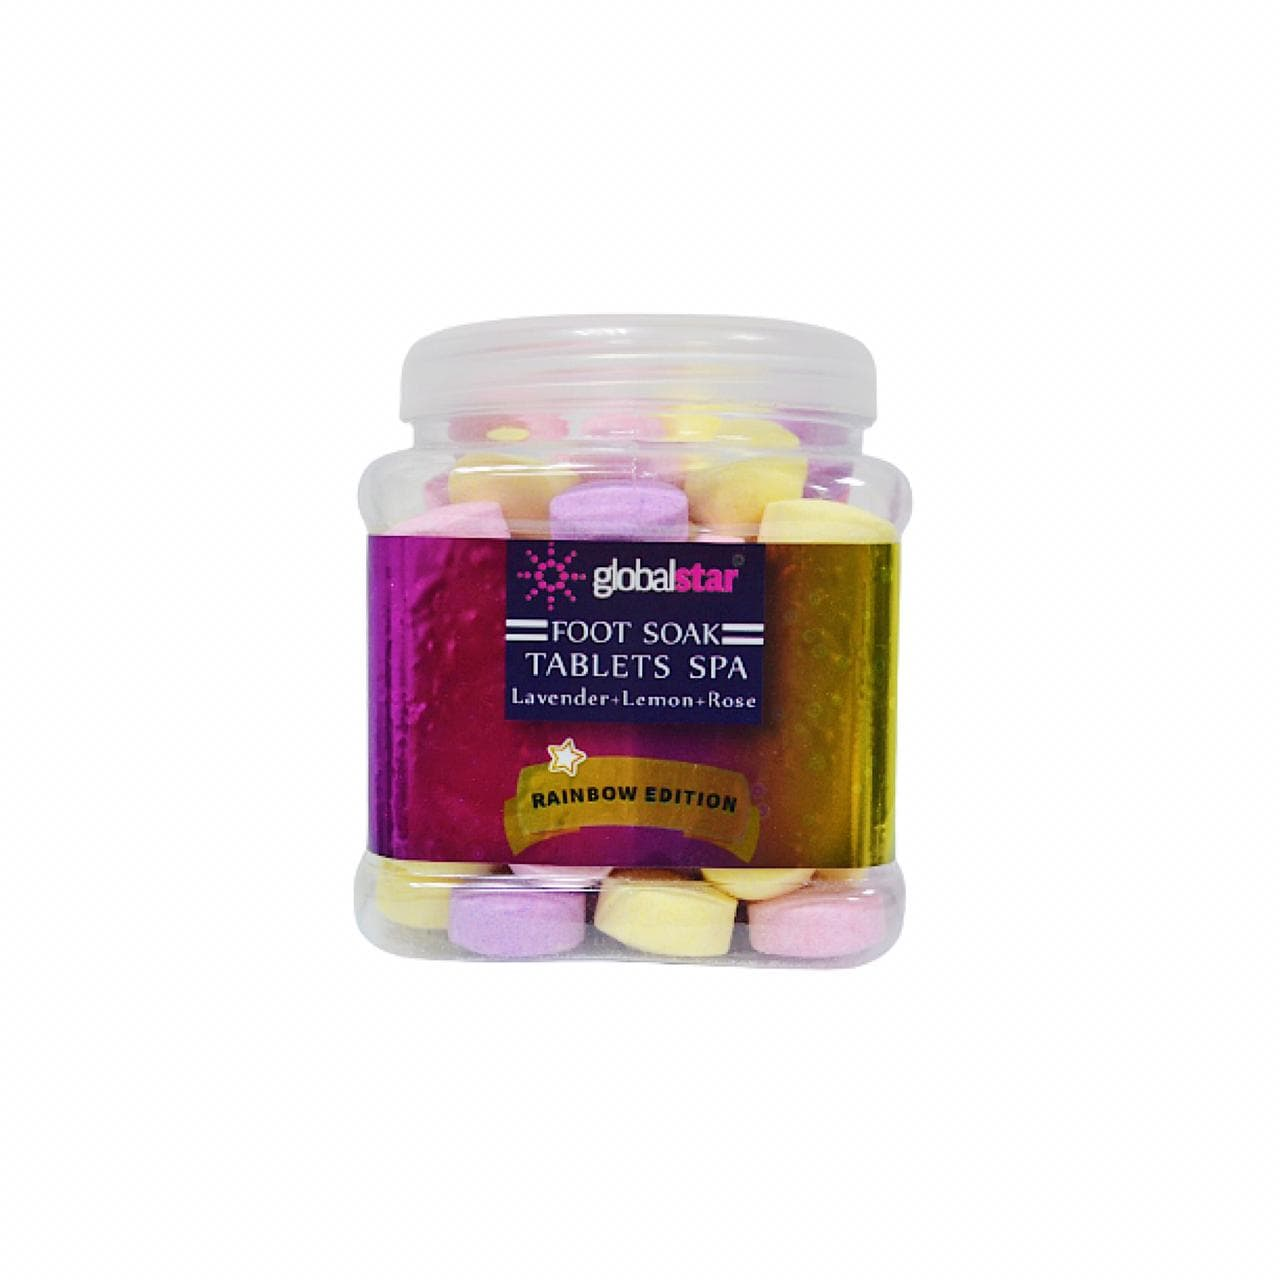 Globalstar Foot Soak Tablets Rainbow Edition 840g